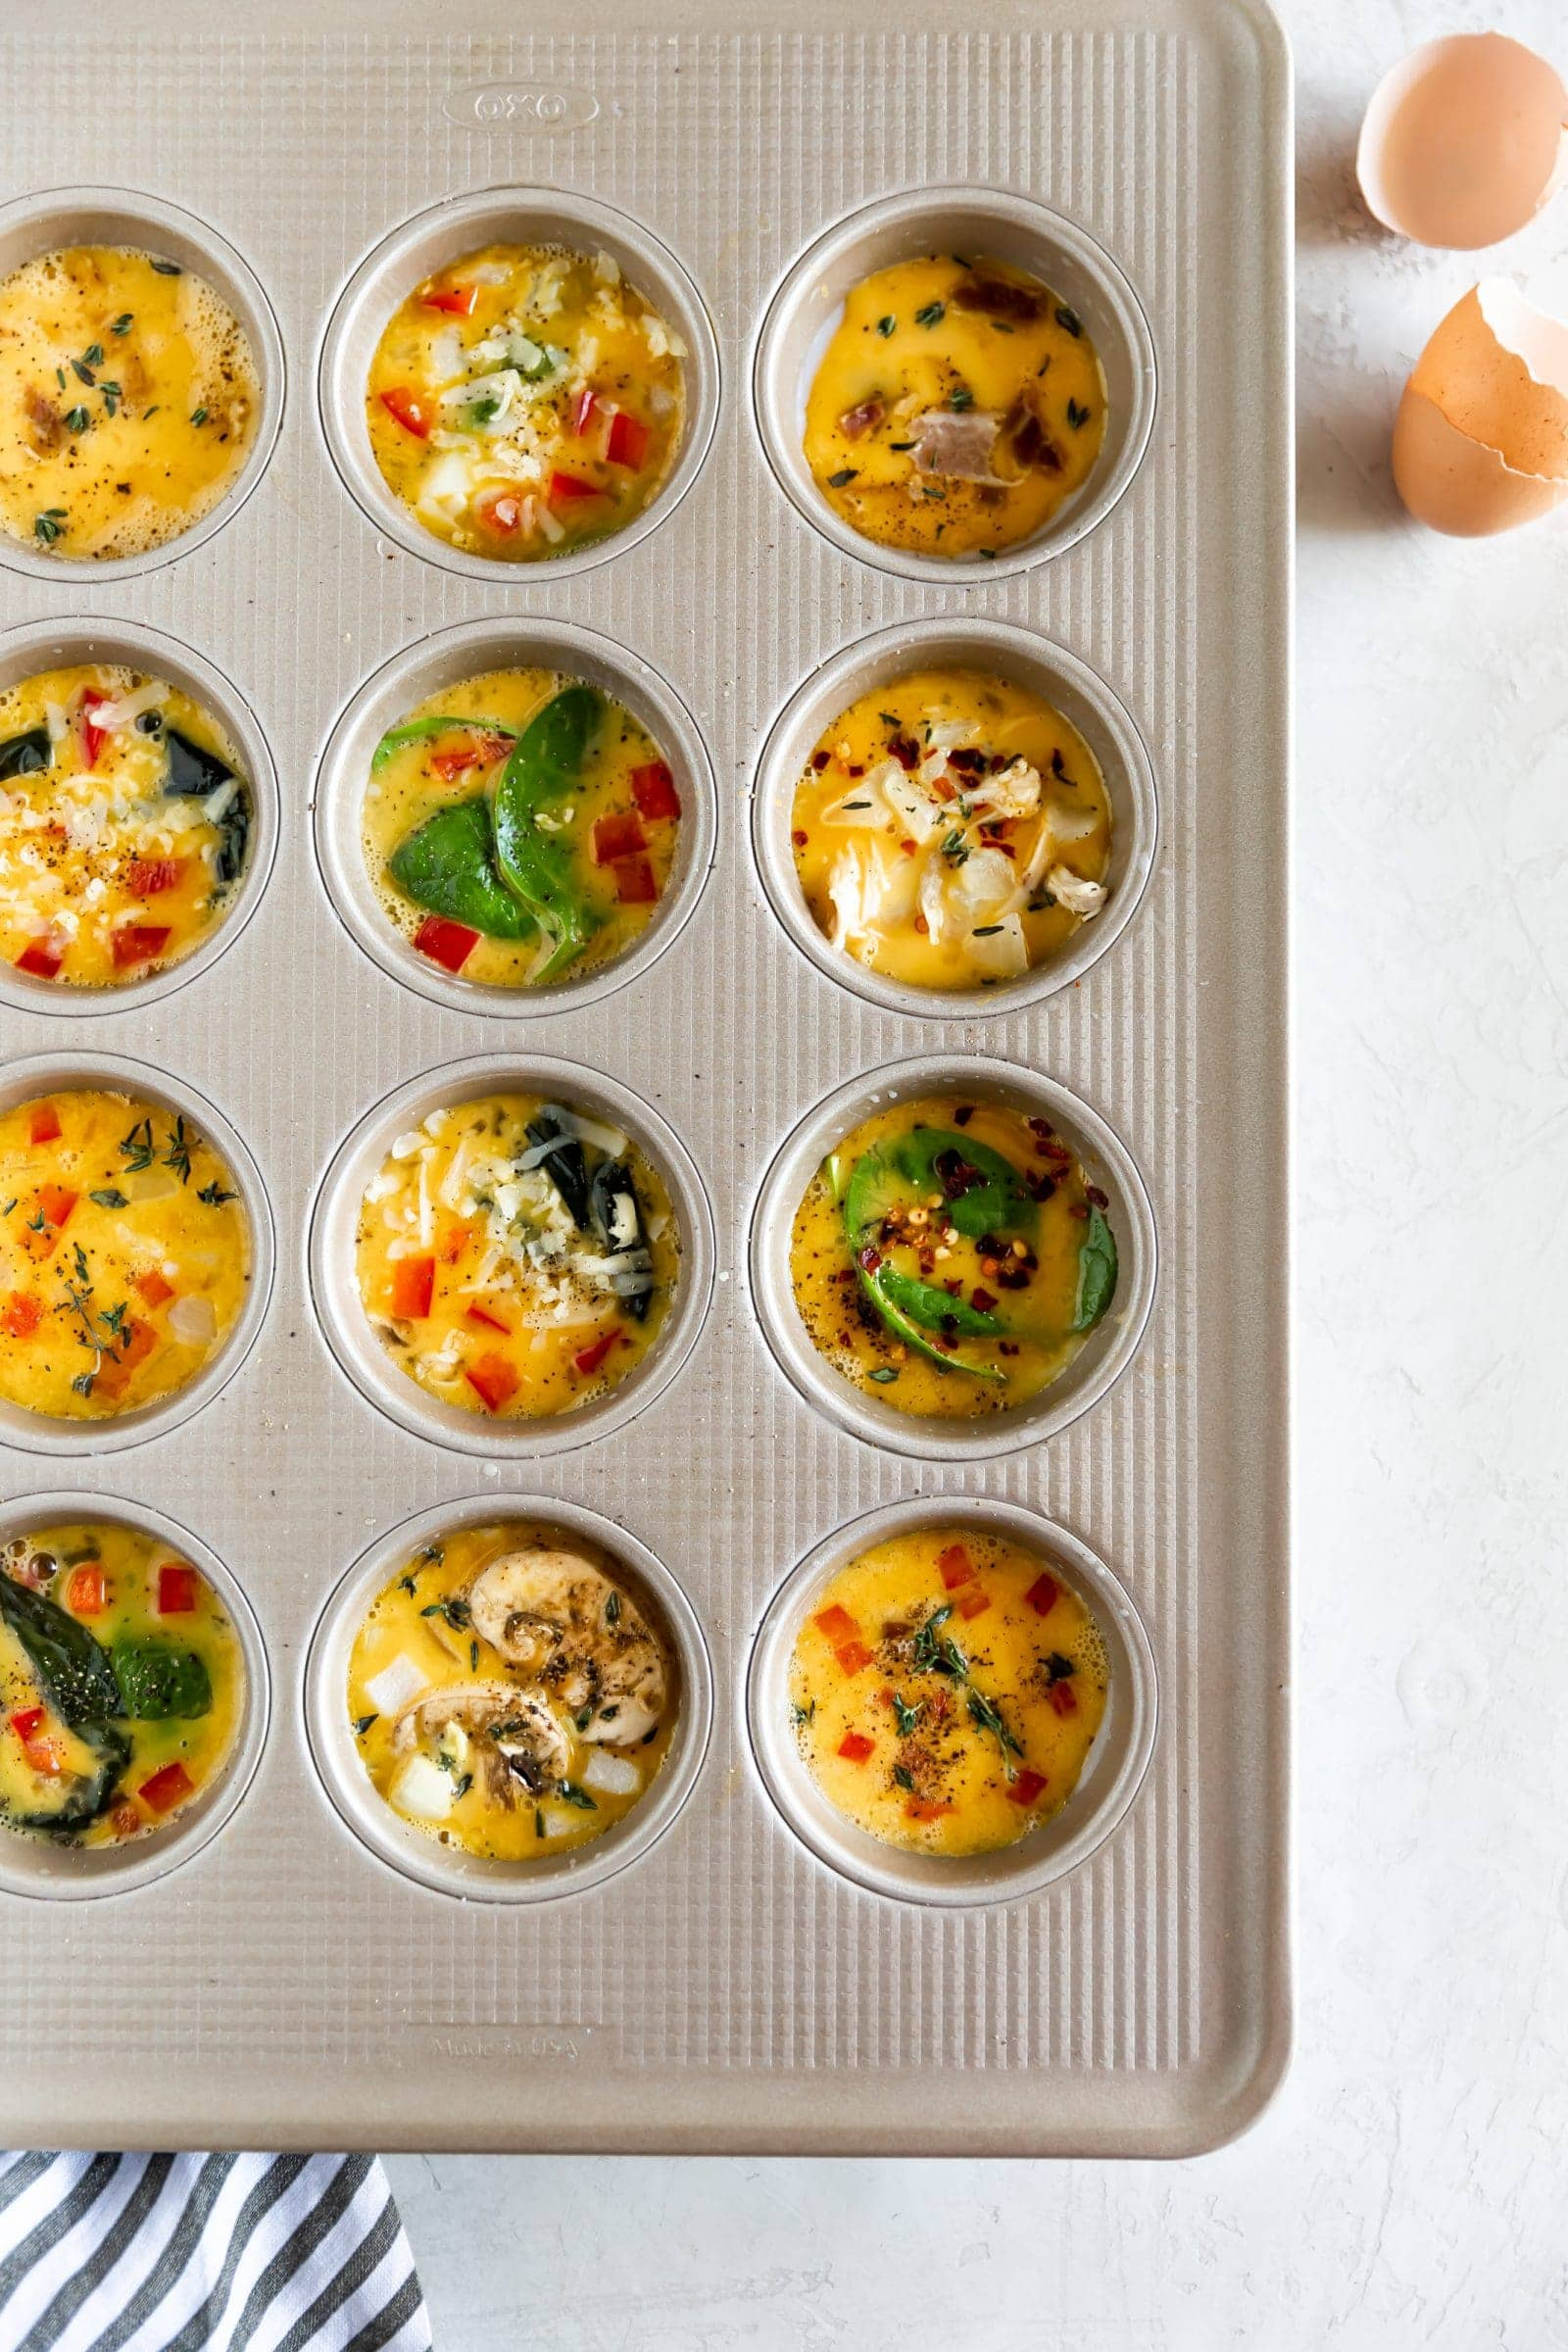 Healthy Egg Muffin Cups Meal Prep Idea A Sassy Spoon